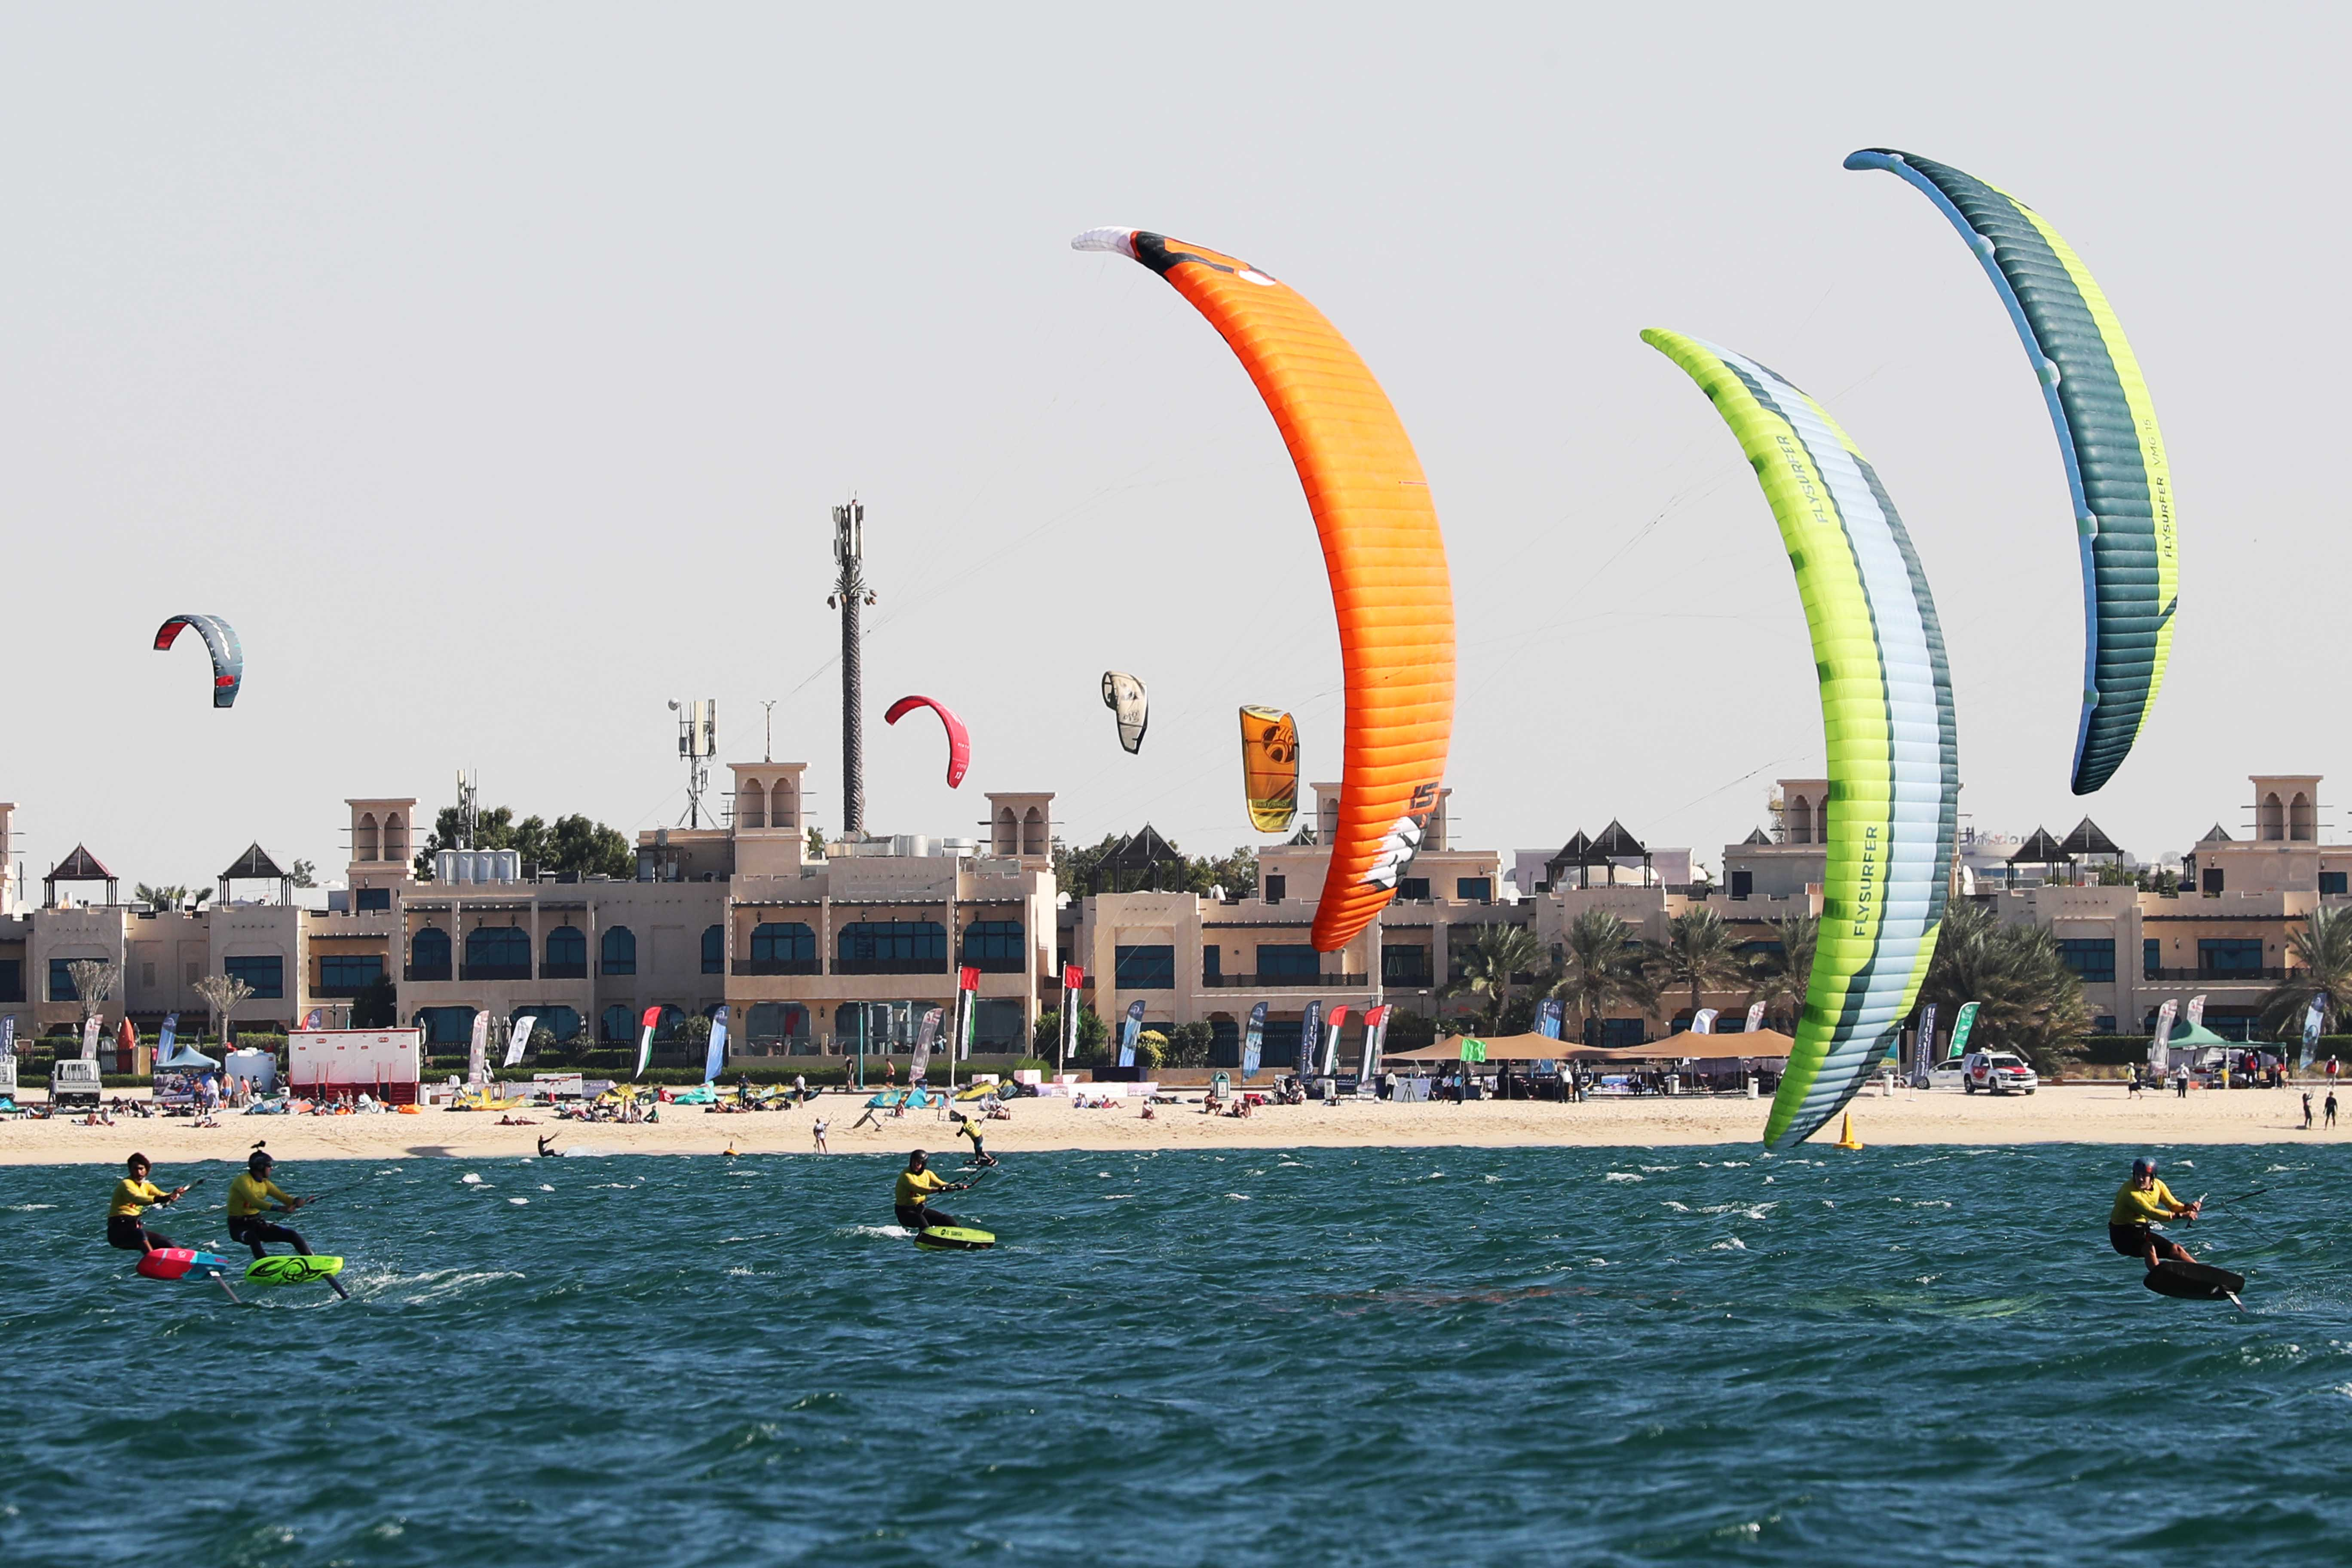 Kitesurf attracts attention in Nessnass Beach today & tomorrow